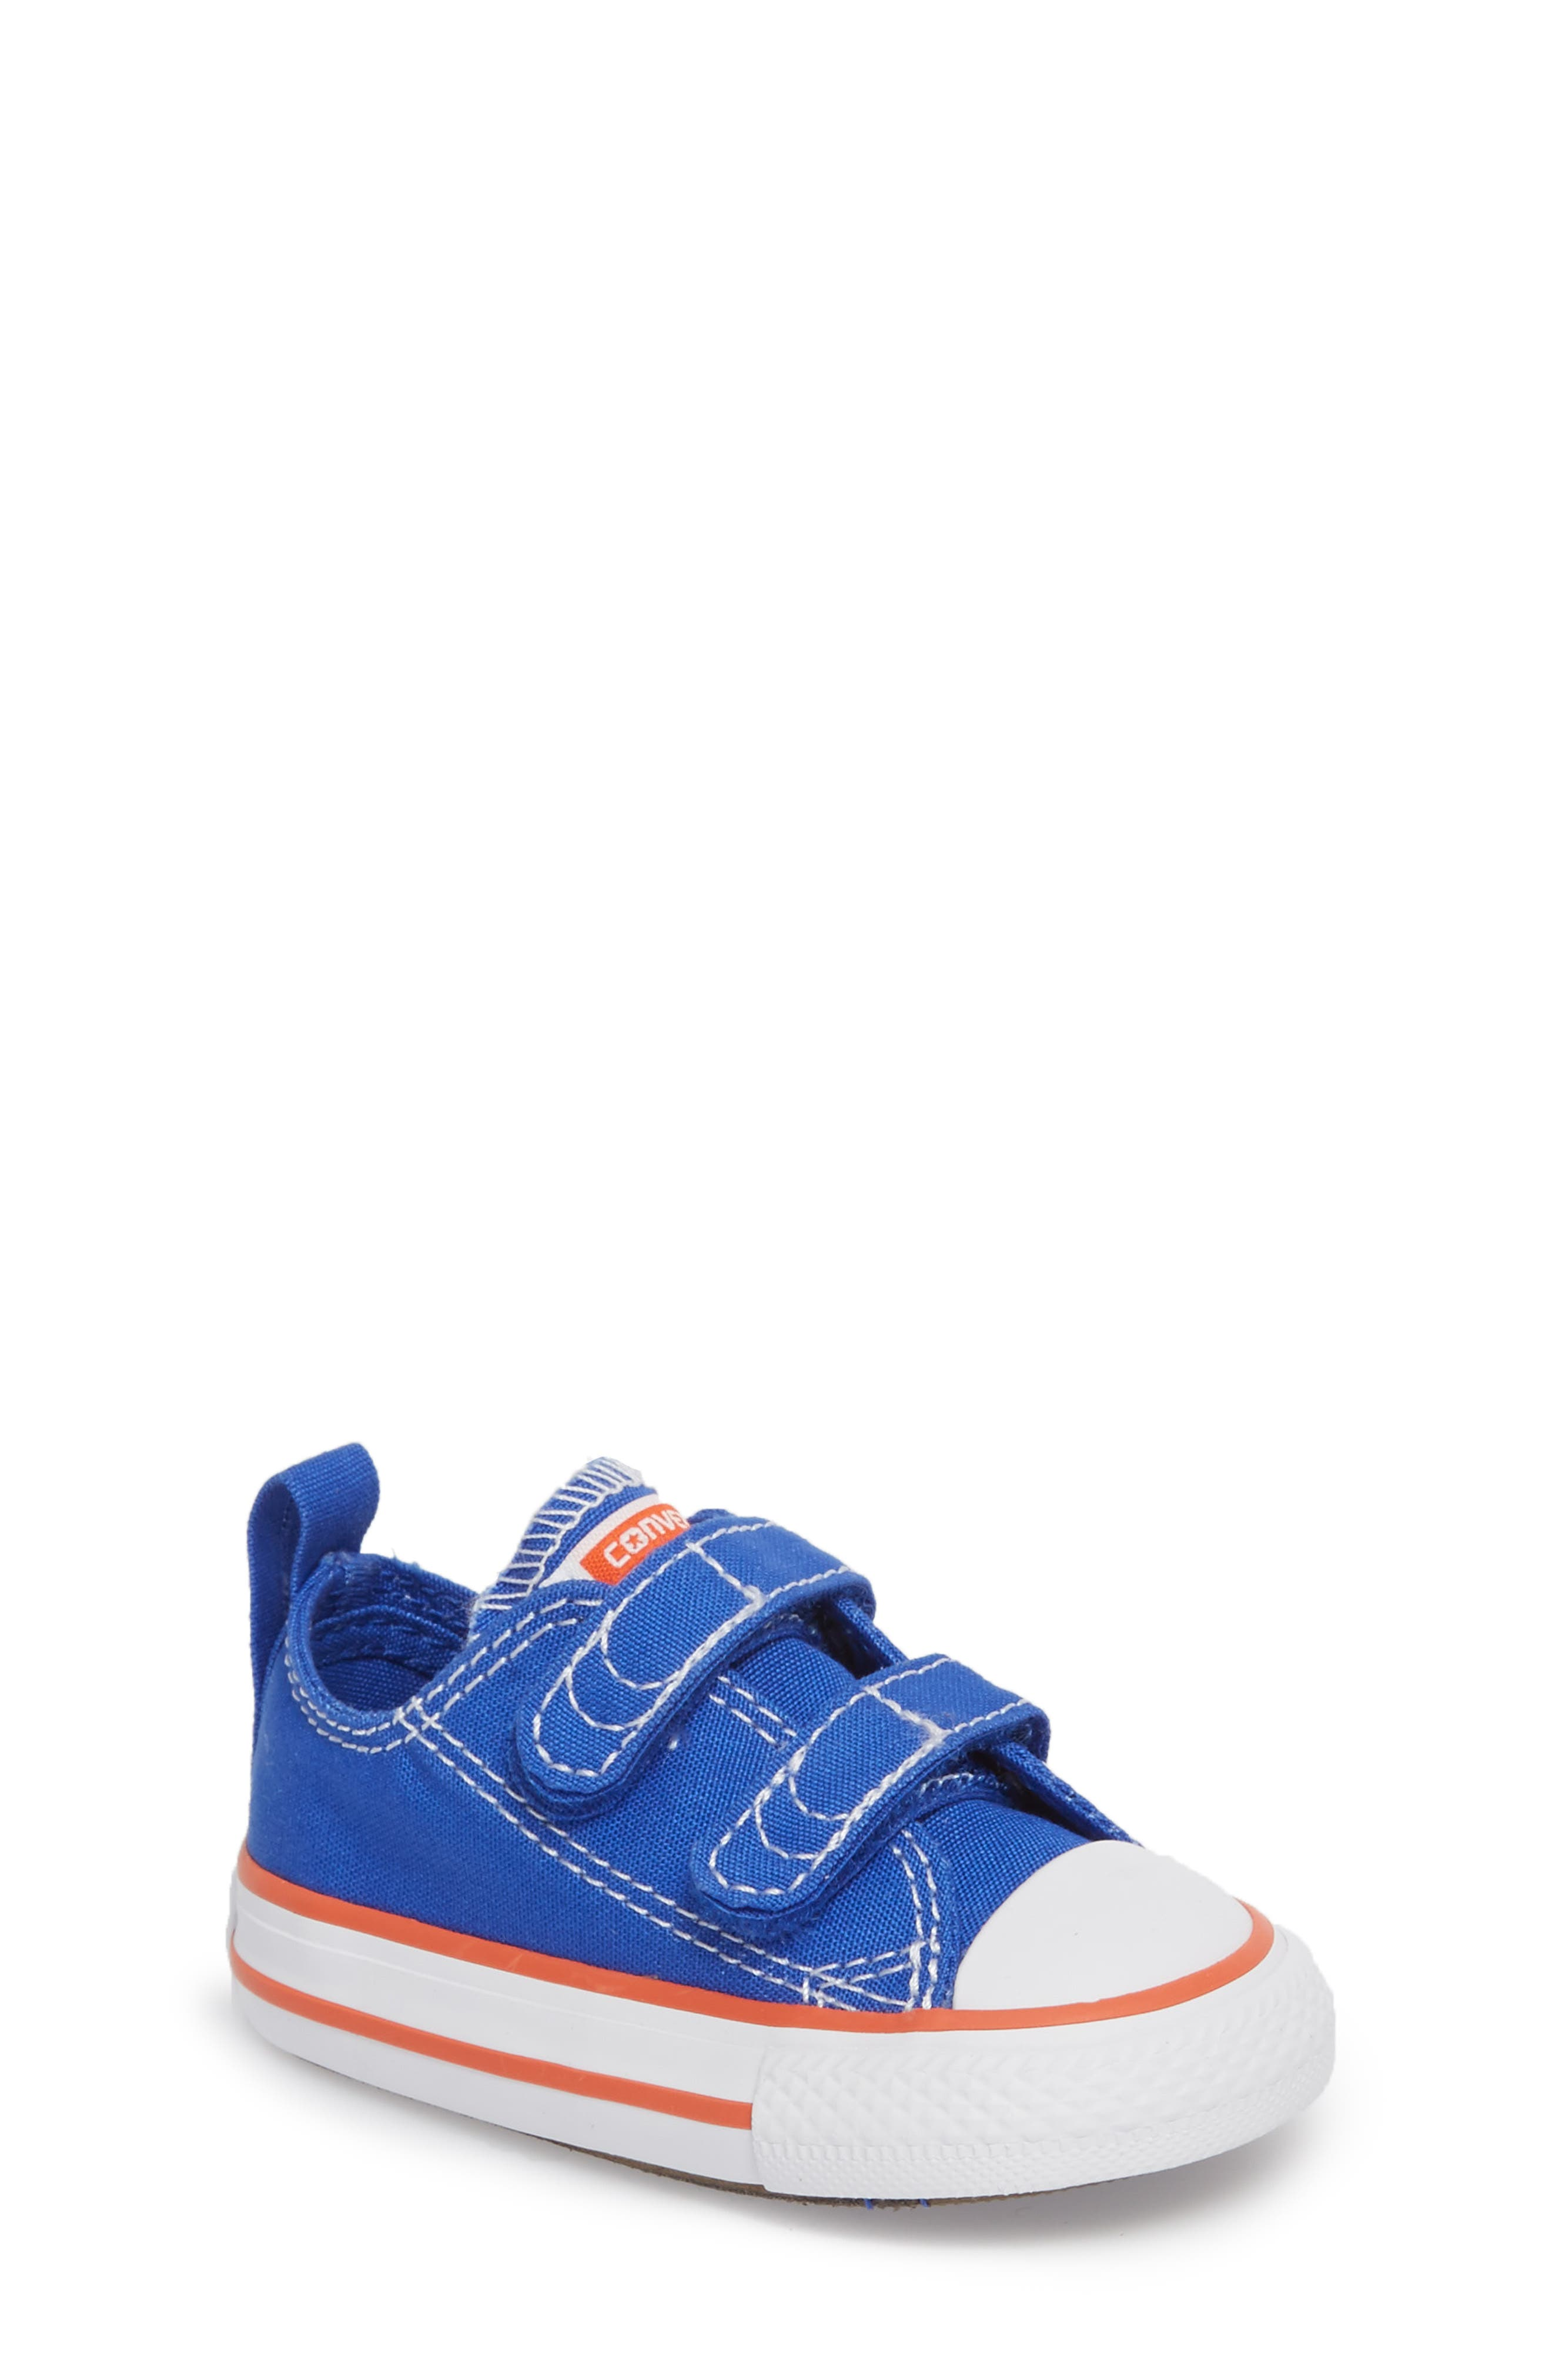 Alternate Image 1 Selected - Converse Chuck Taylor® All Star® Seasonal 2V Low Top Sneaker (Baby, Walker & Toddler)